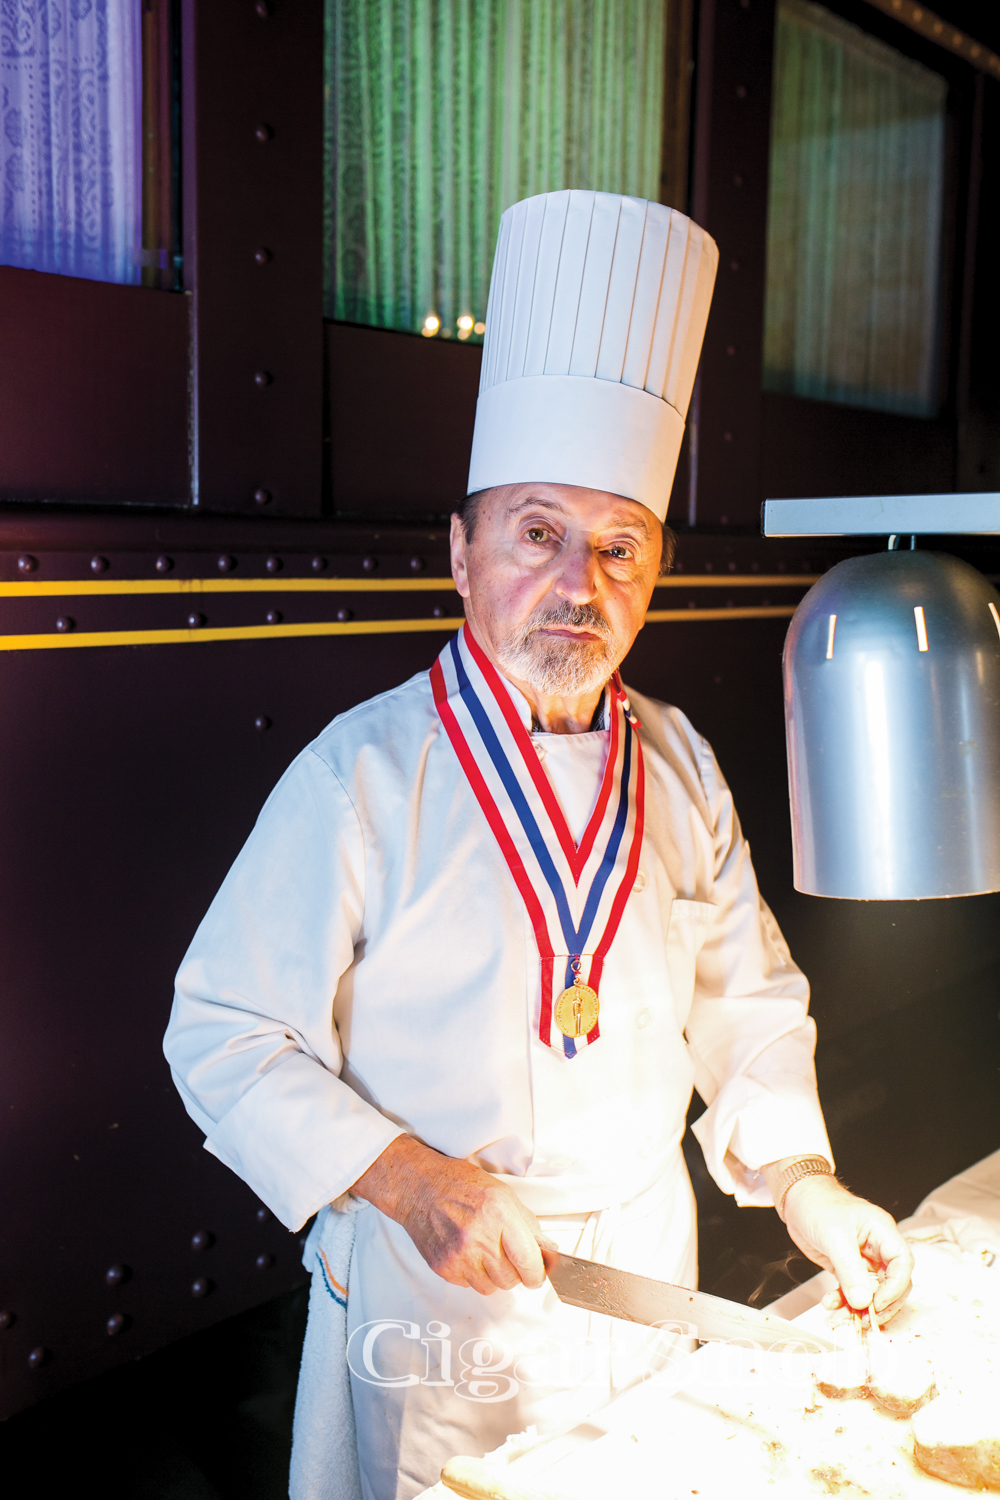 Executive Chef Gaetano DiSalvo